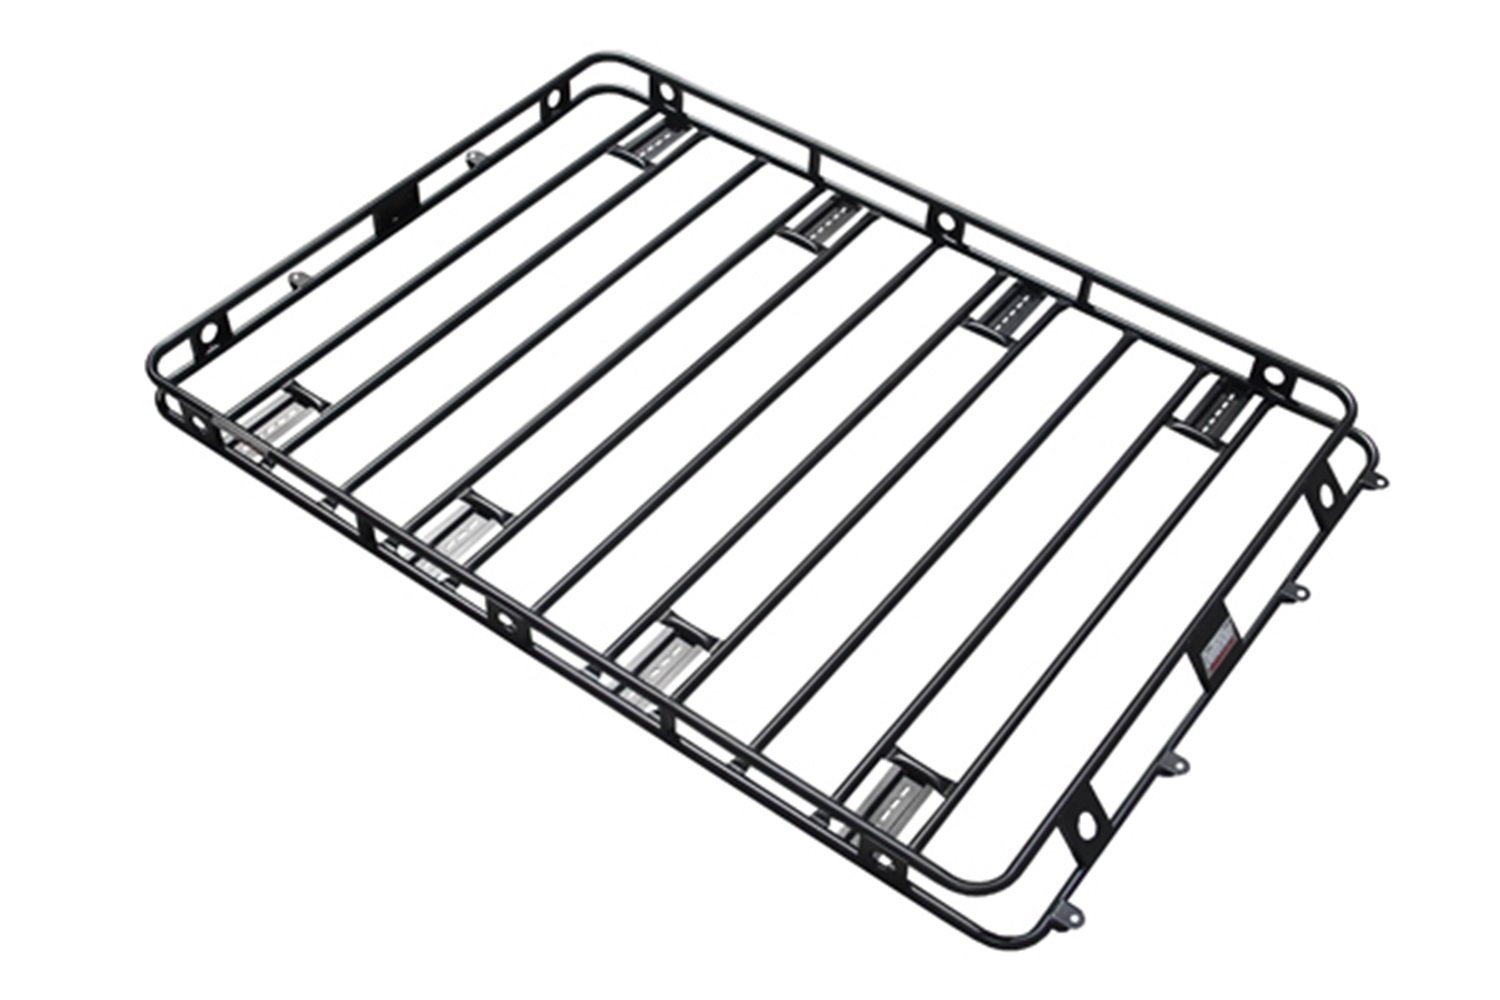 Smittybilt 50125AM Defender Roof Rack 5 ft. x 12 ft. x 4 in. Bolt Together Incl. AM Clamps/Brackets Defender Roof Rack